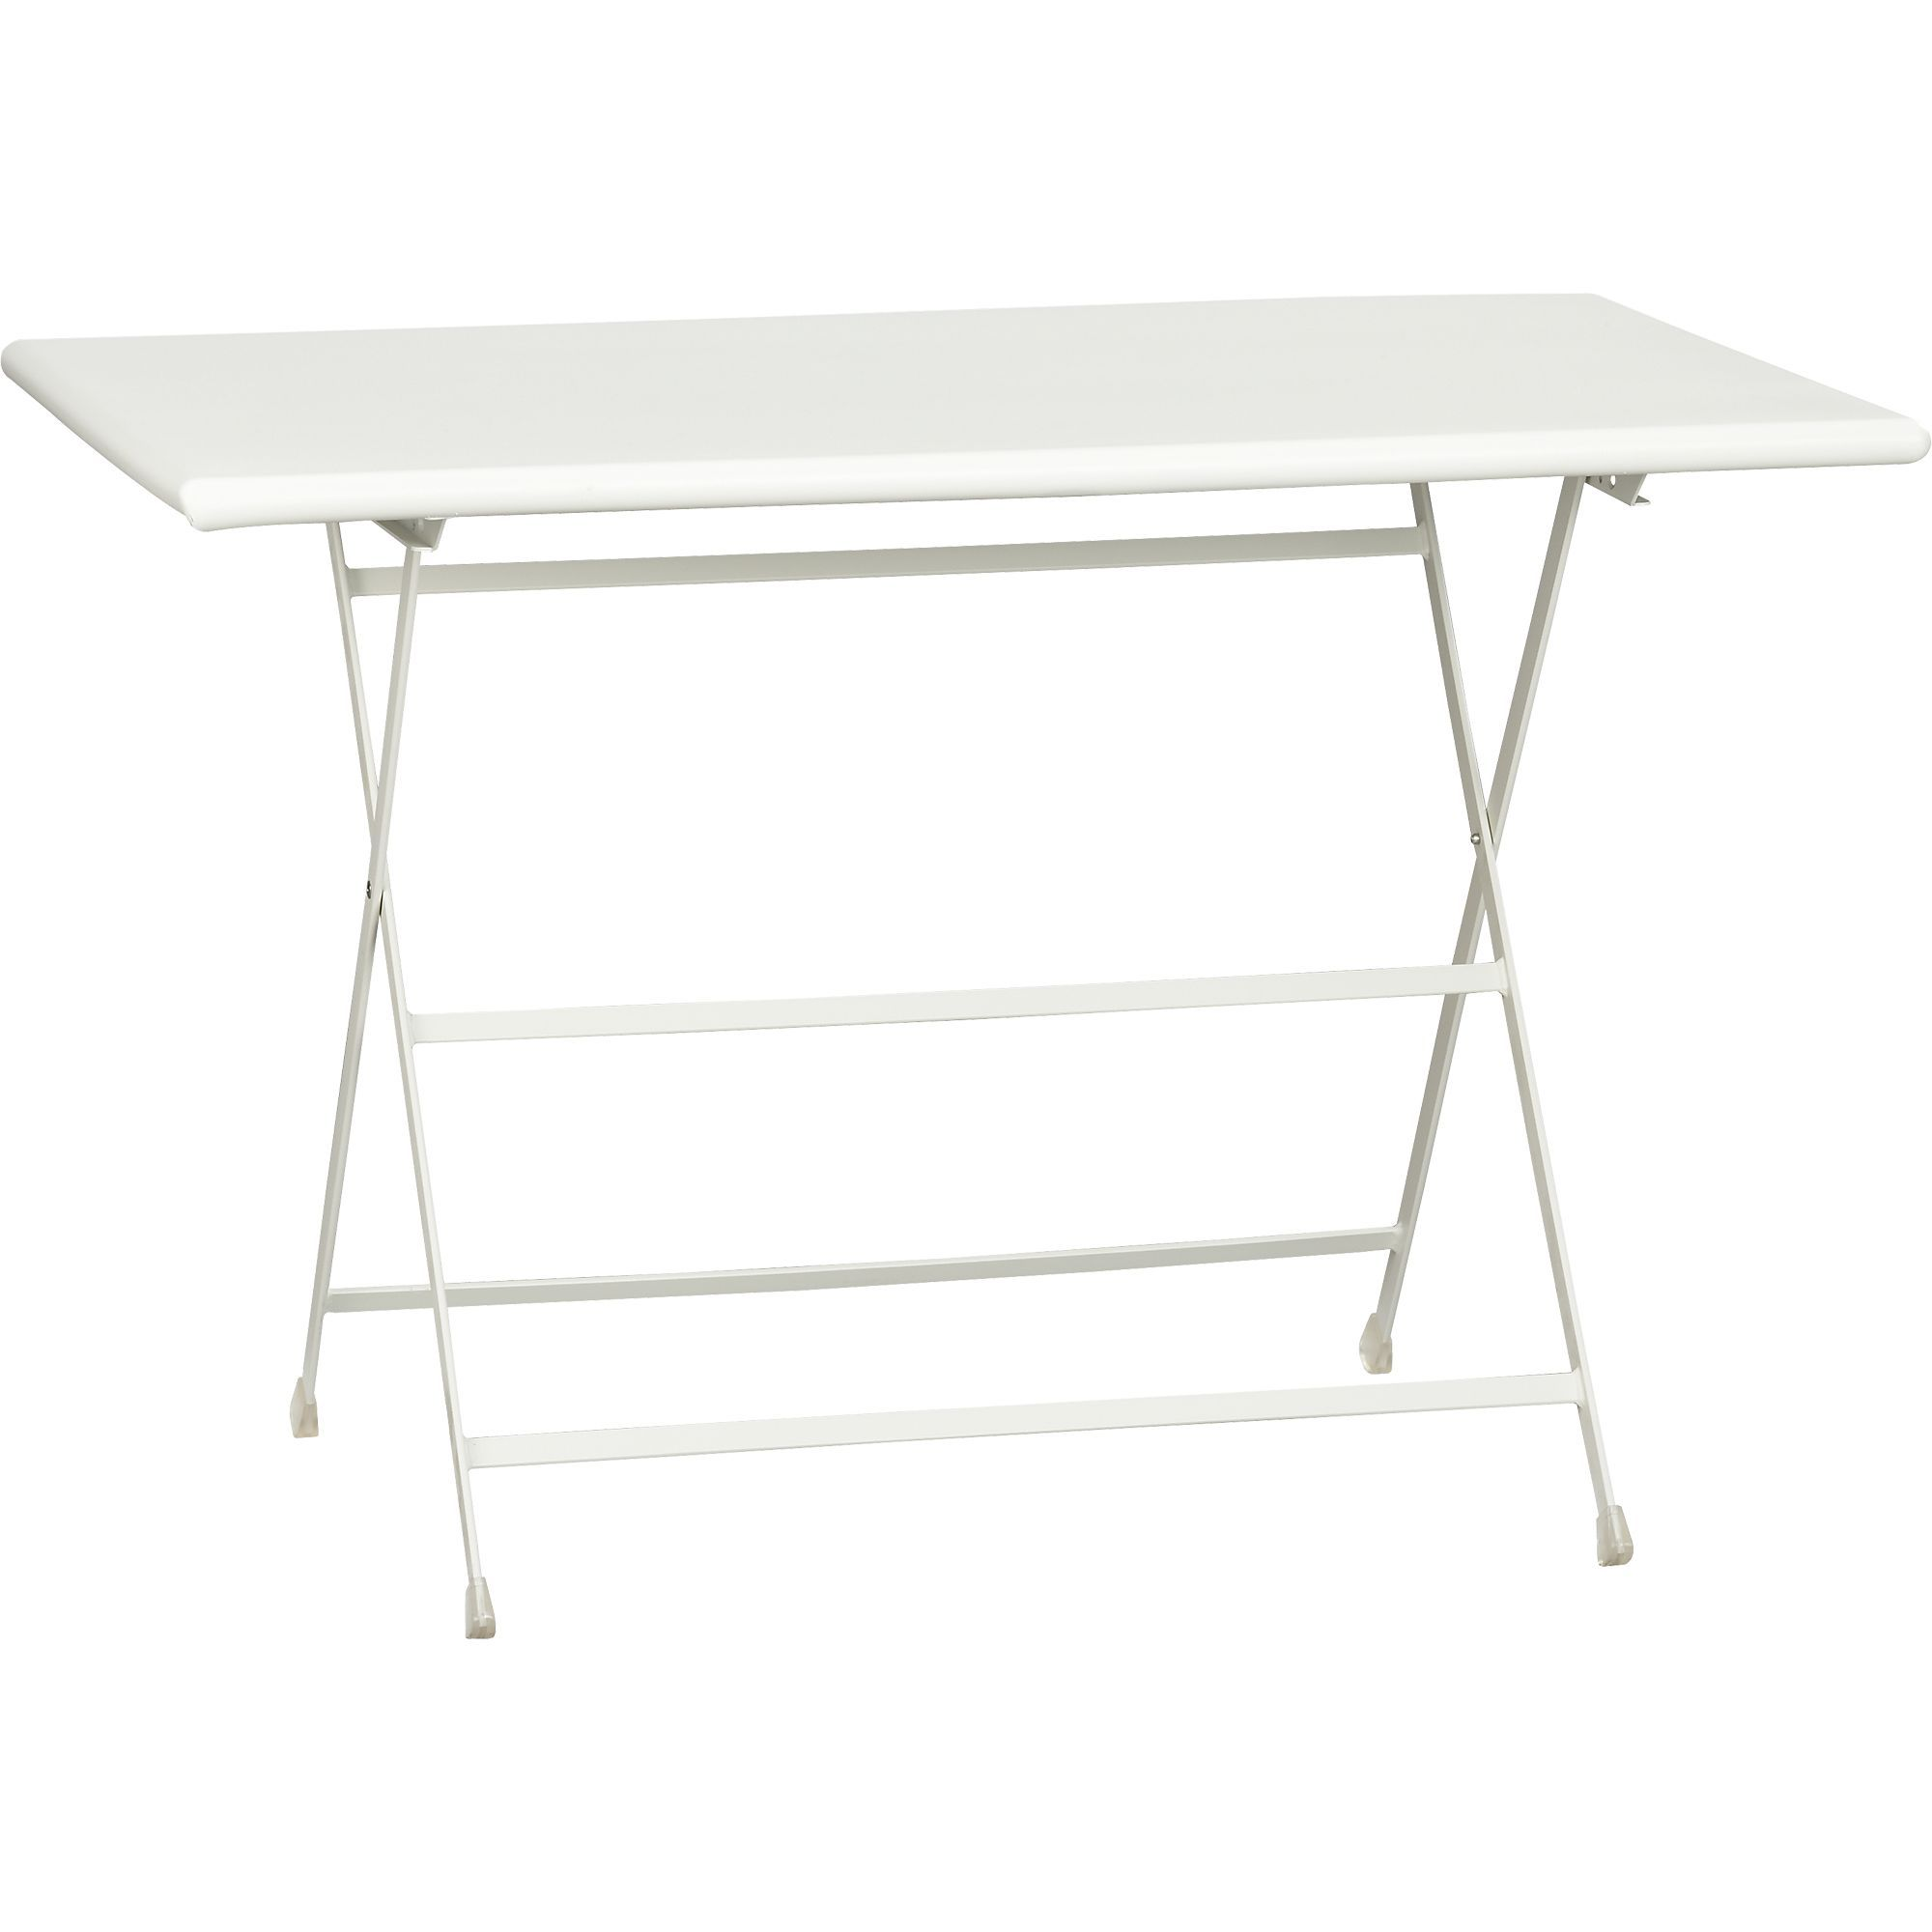 Pronto White Folding Bistro Table in Outdoor Dining